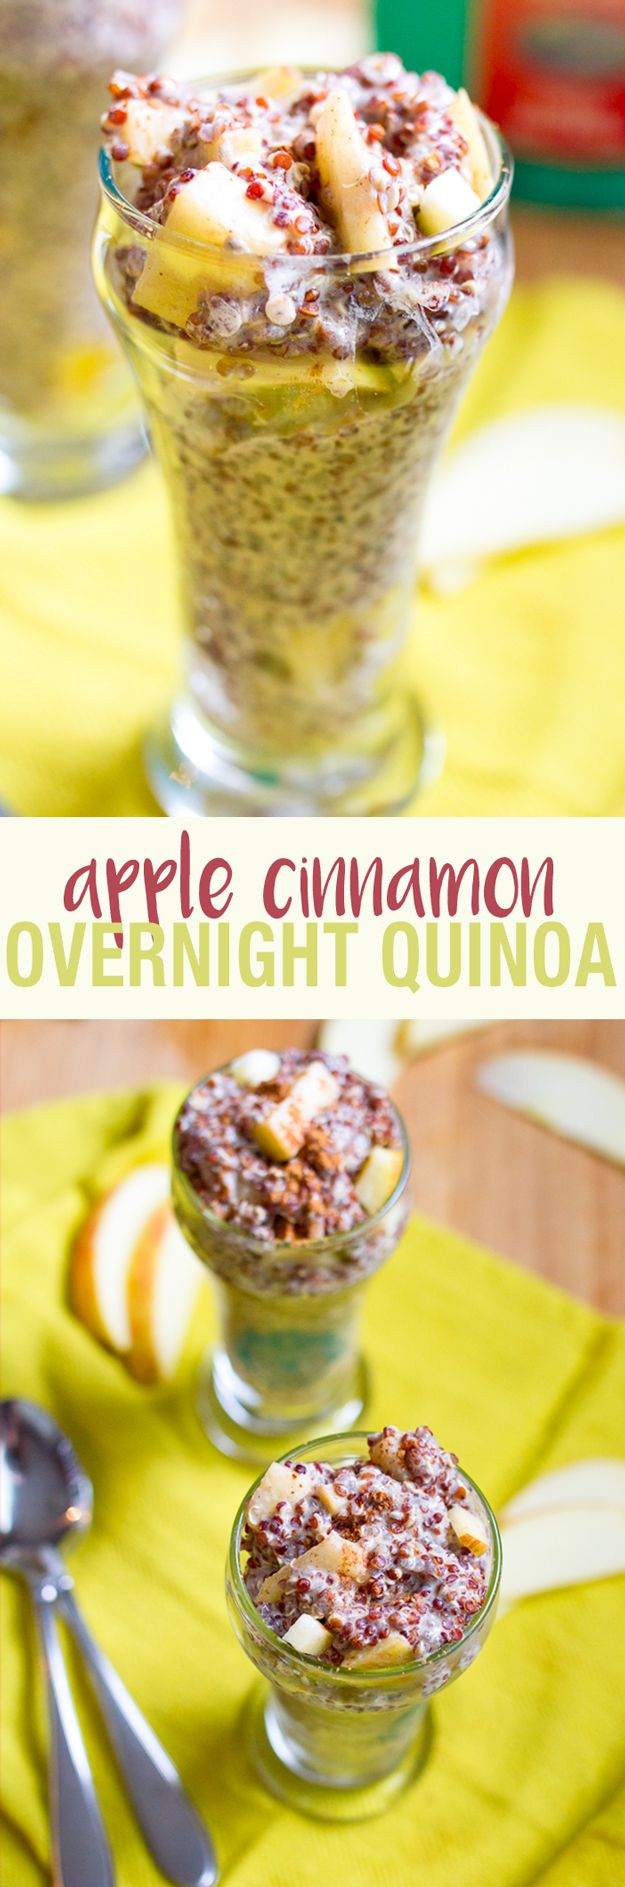 Apple-Cinnamon-Overnight-Quinoa-•¾ cup cooked red or white quinoa •1 cup unsweetened almond milk •1 Tablespoon chia seeds •1 Tablespoon vanilla protein powder (I used a plant-based protein powder) •½ teaspoon vanilla •½ teaspoon cinnamon •½ apple, chopped •2-3 drops liquid stevia